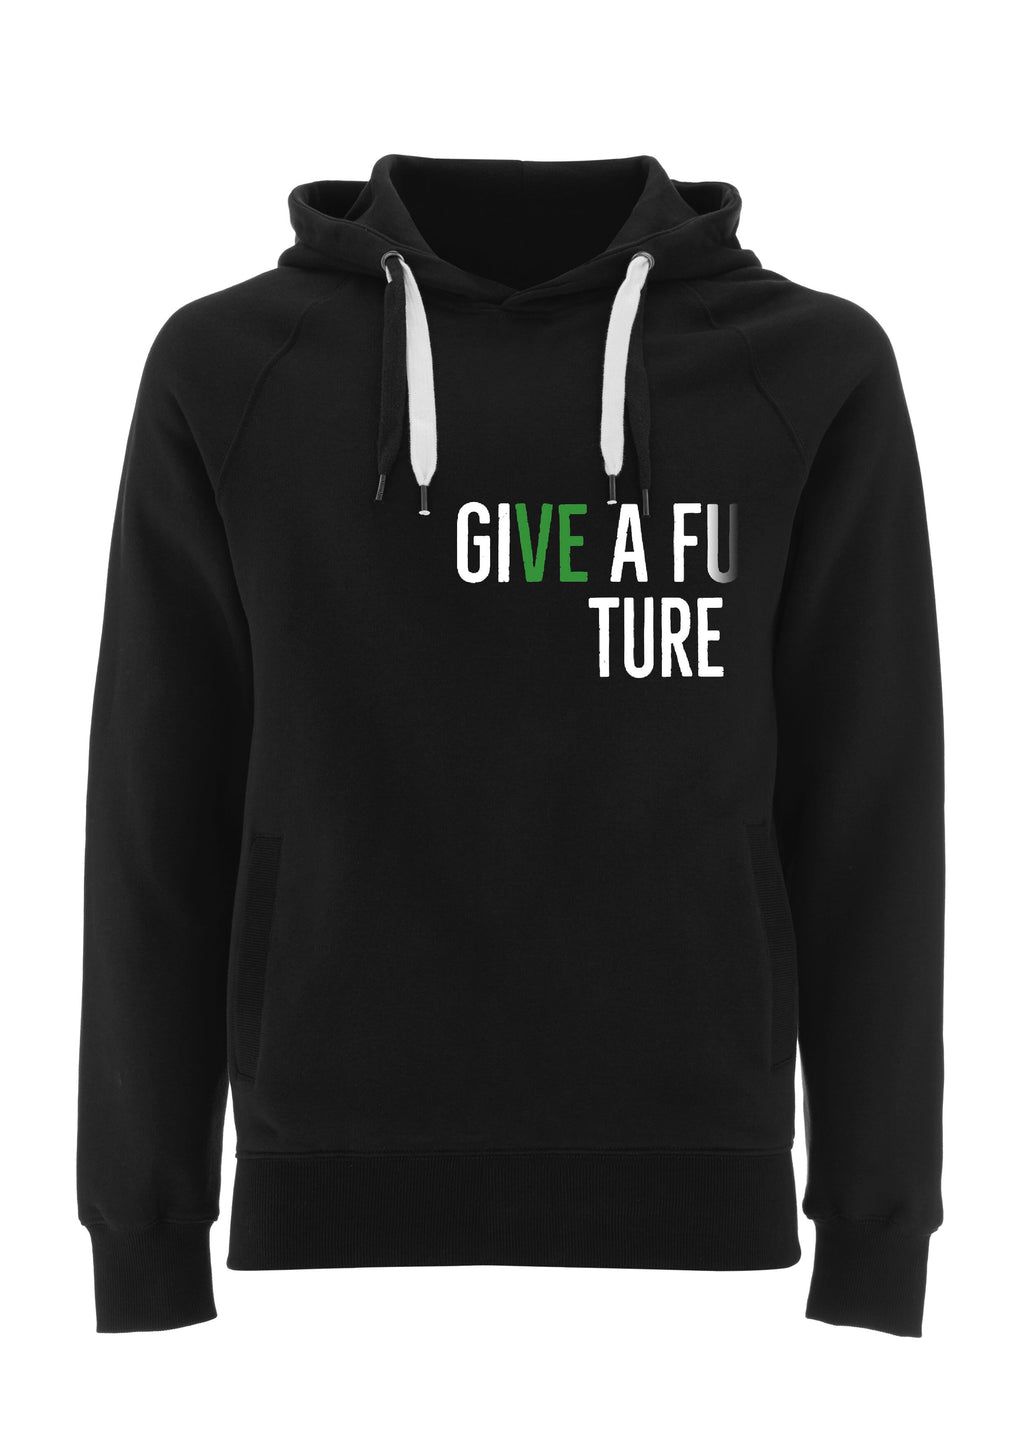 GIVE A FUTURE Unisex Organic Cotton Hoodie